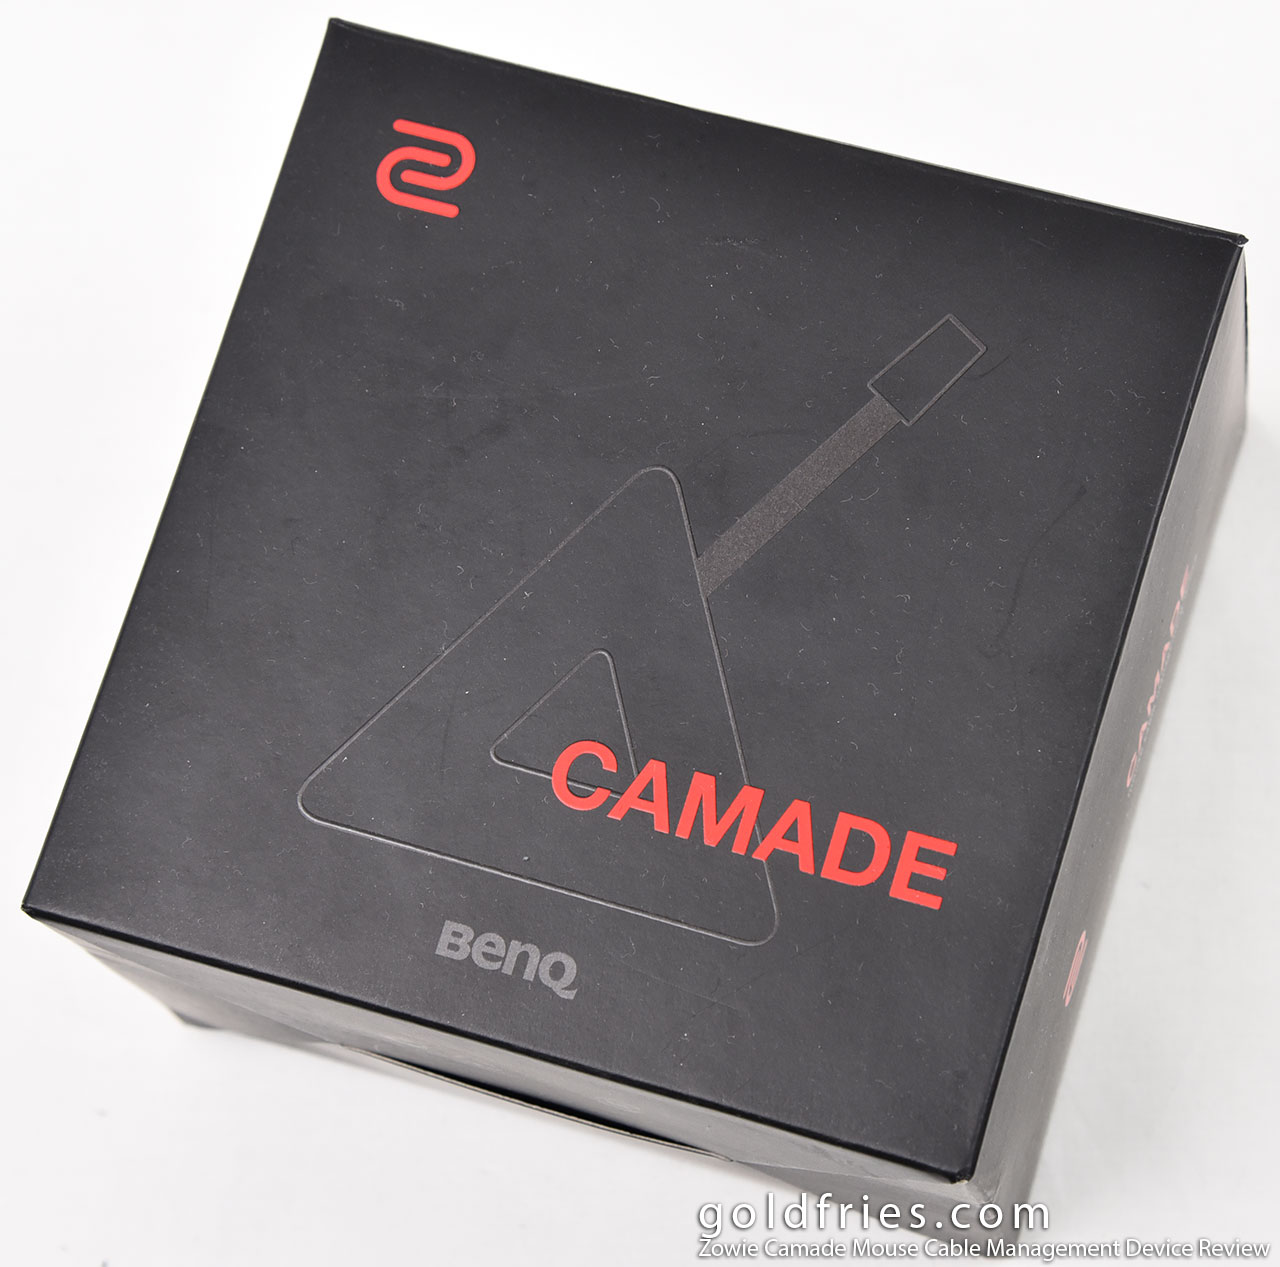 Zowie Camade Mouse Cable Management Device Review